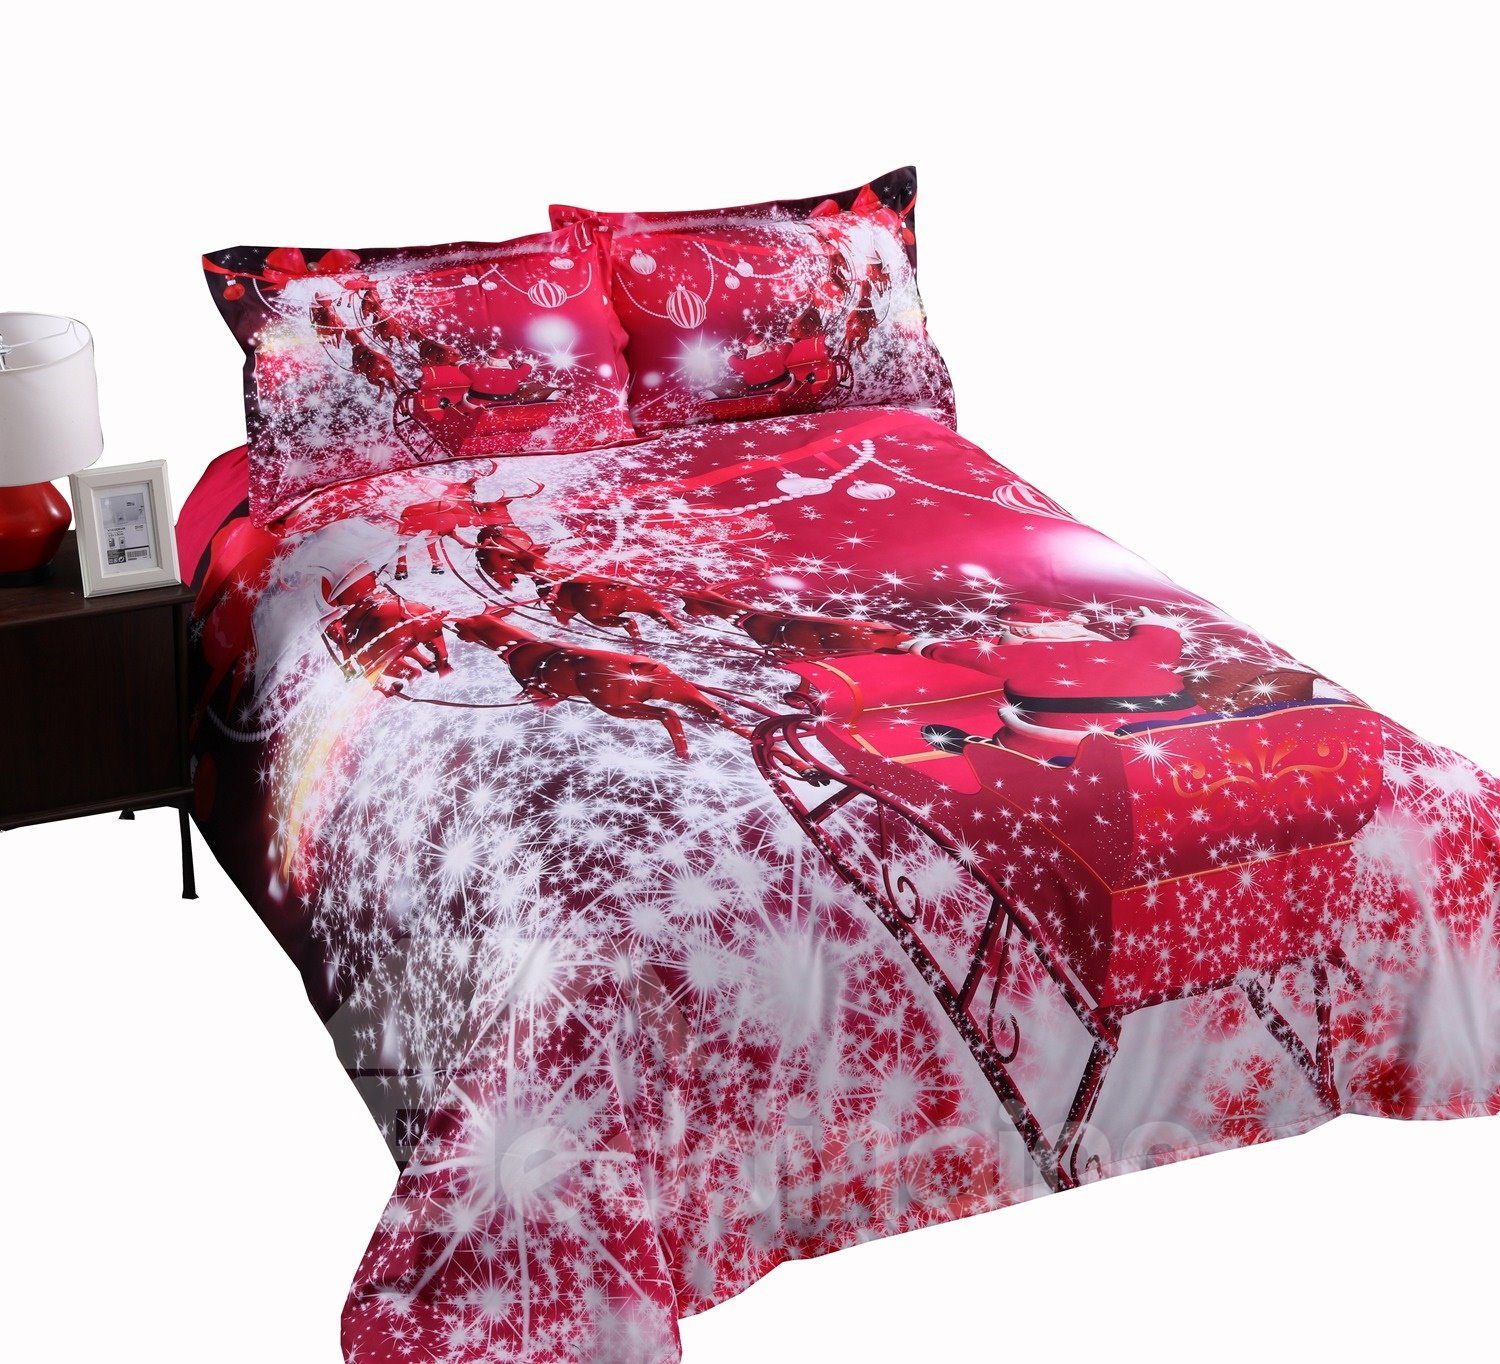 Onlwe 3D Santa Claus Riding Sleigh Printed 4-Piece Red Bedding Sets/Duvet Covers